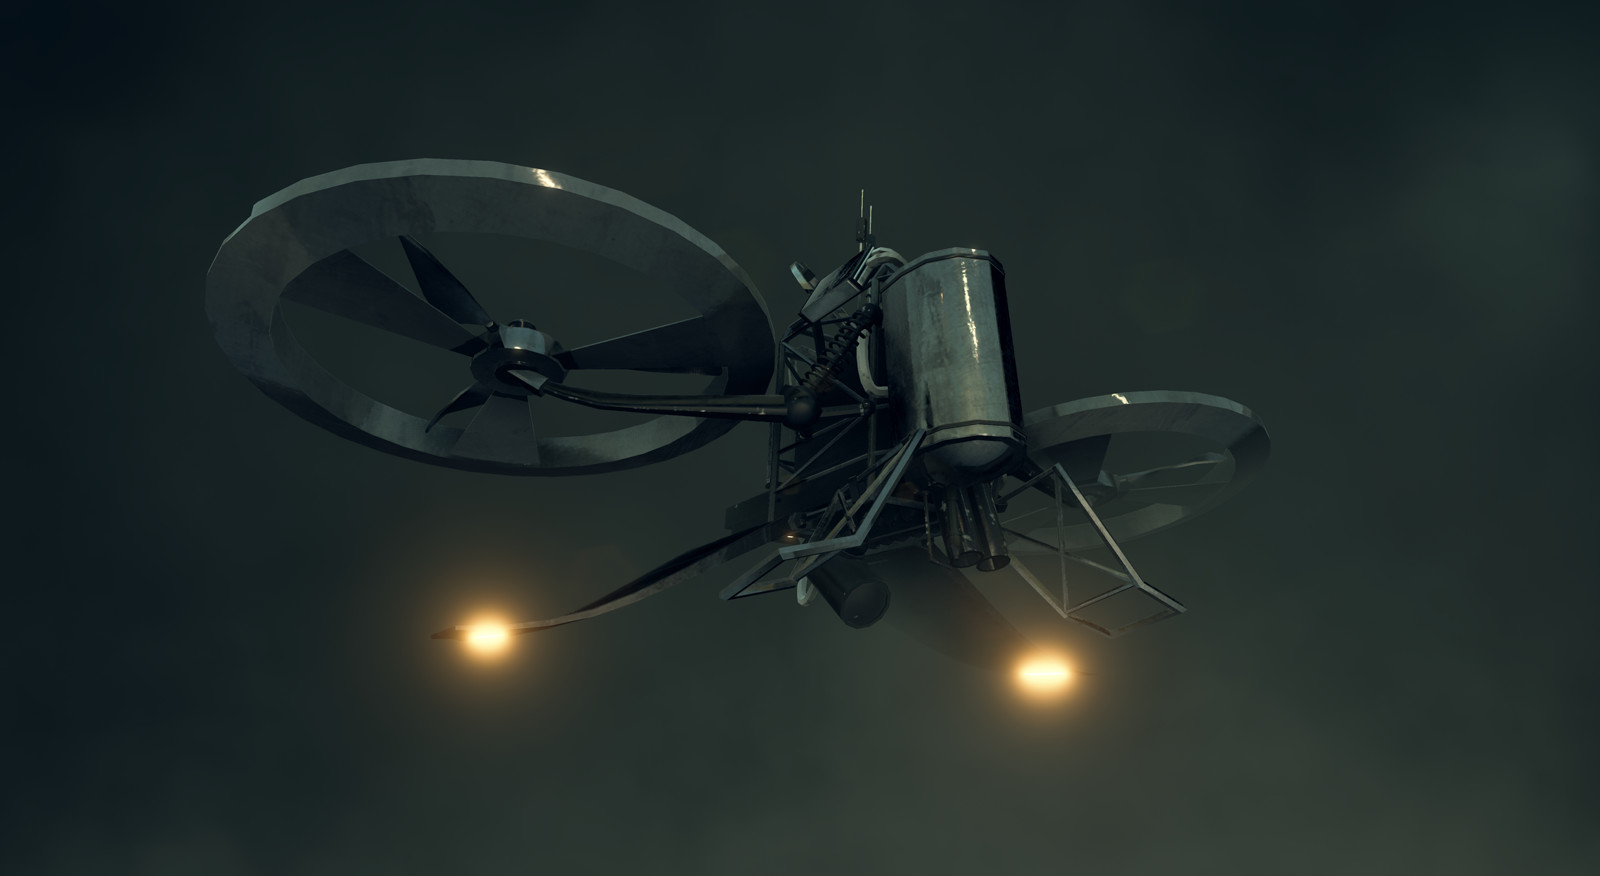 In-engine render of the drone